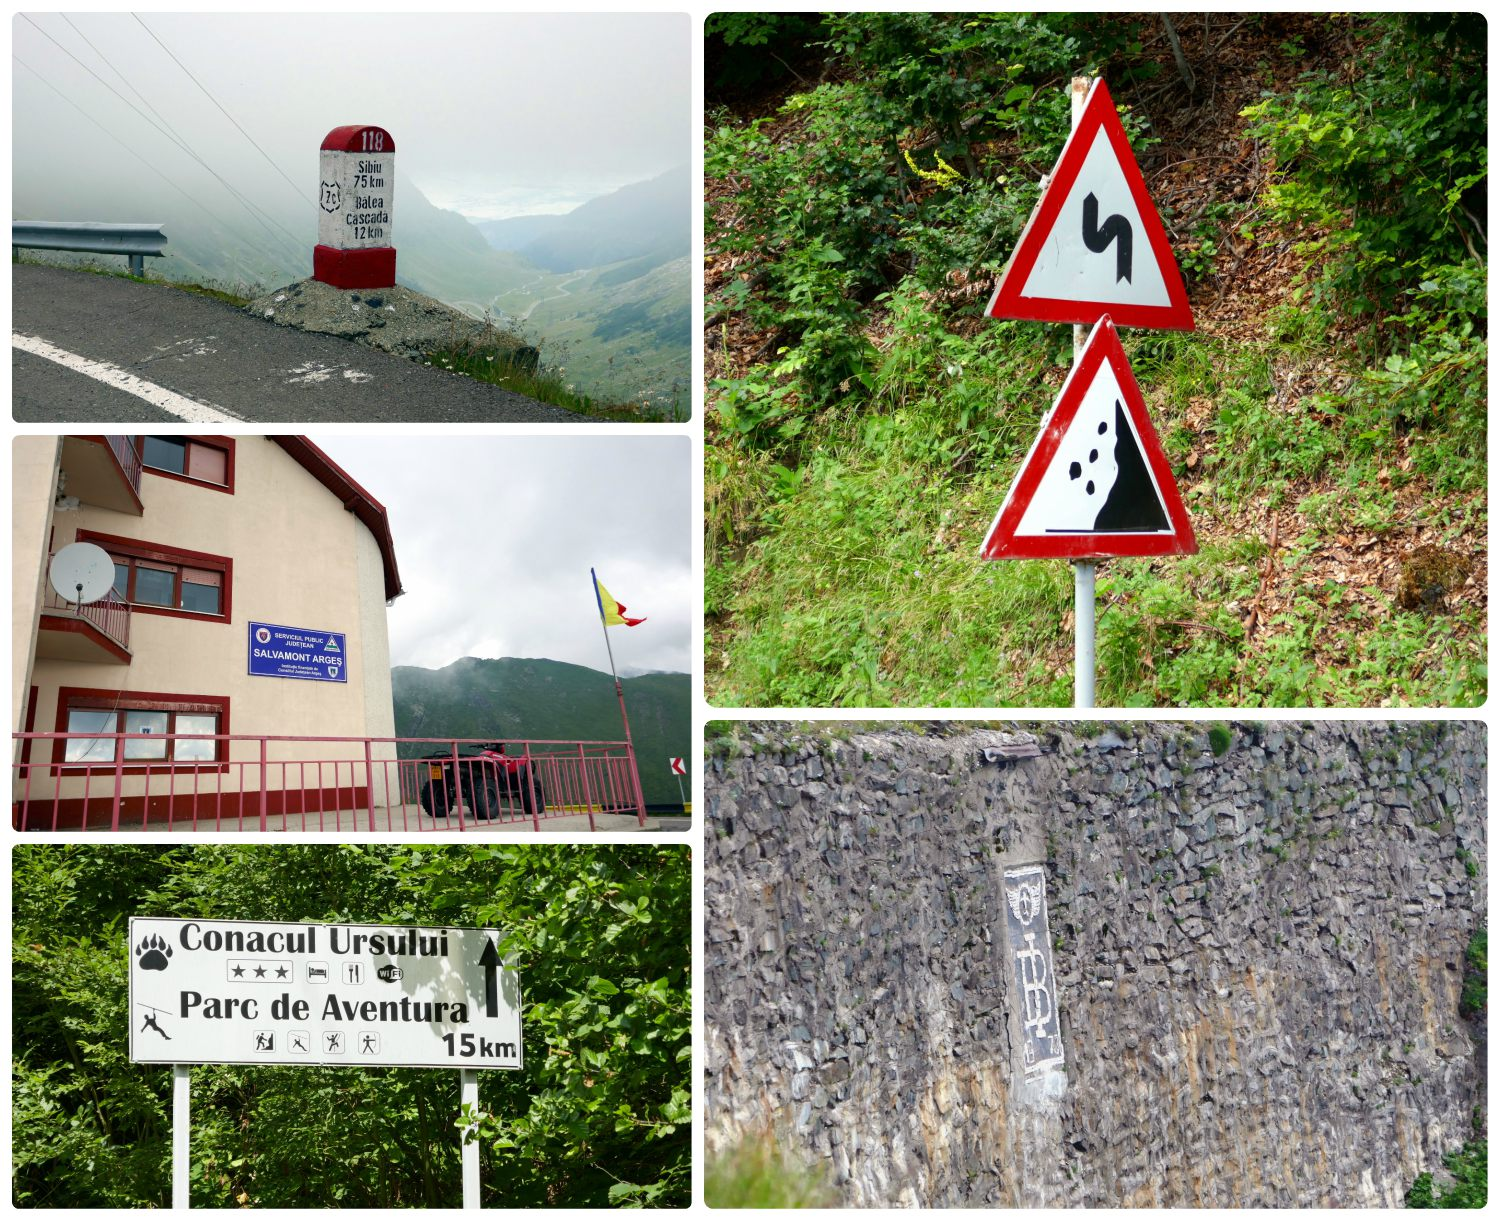 Clockwise (from the top): Small concrete signs are posted along the Transfagarasan Highway to indicate the distance to the next town, it's no surprise to see signs for falling rocks and dangerous turns, a commemoration in the stone wall of the 1973 completion of the Transfagarasan Highway, a sign along the drive showing activities that are available in the area, near the top of the mountain is a rescue center.